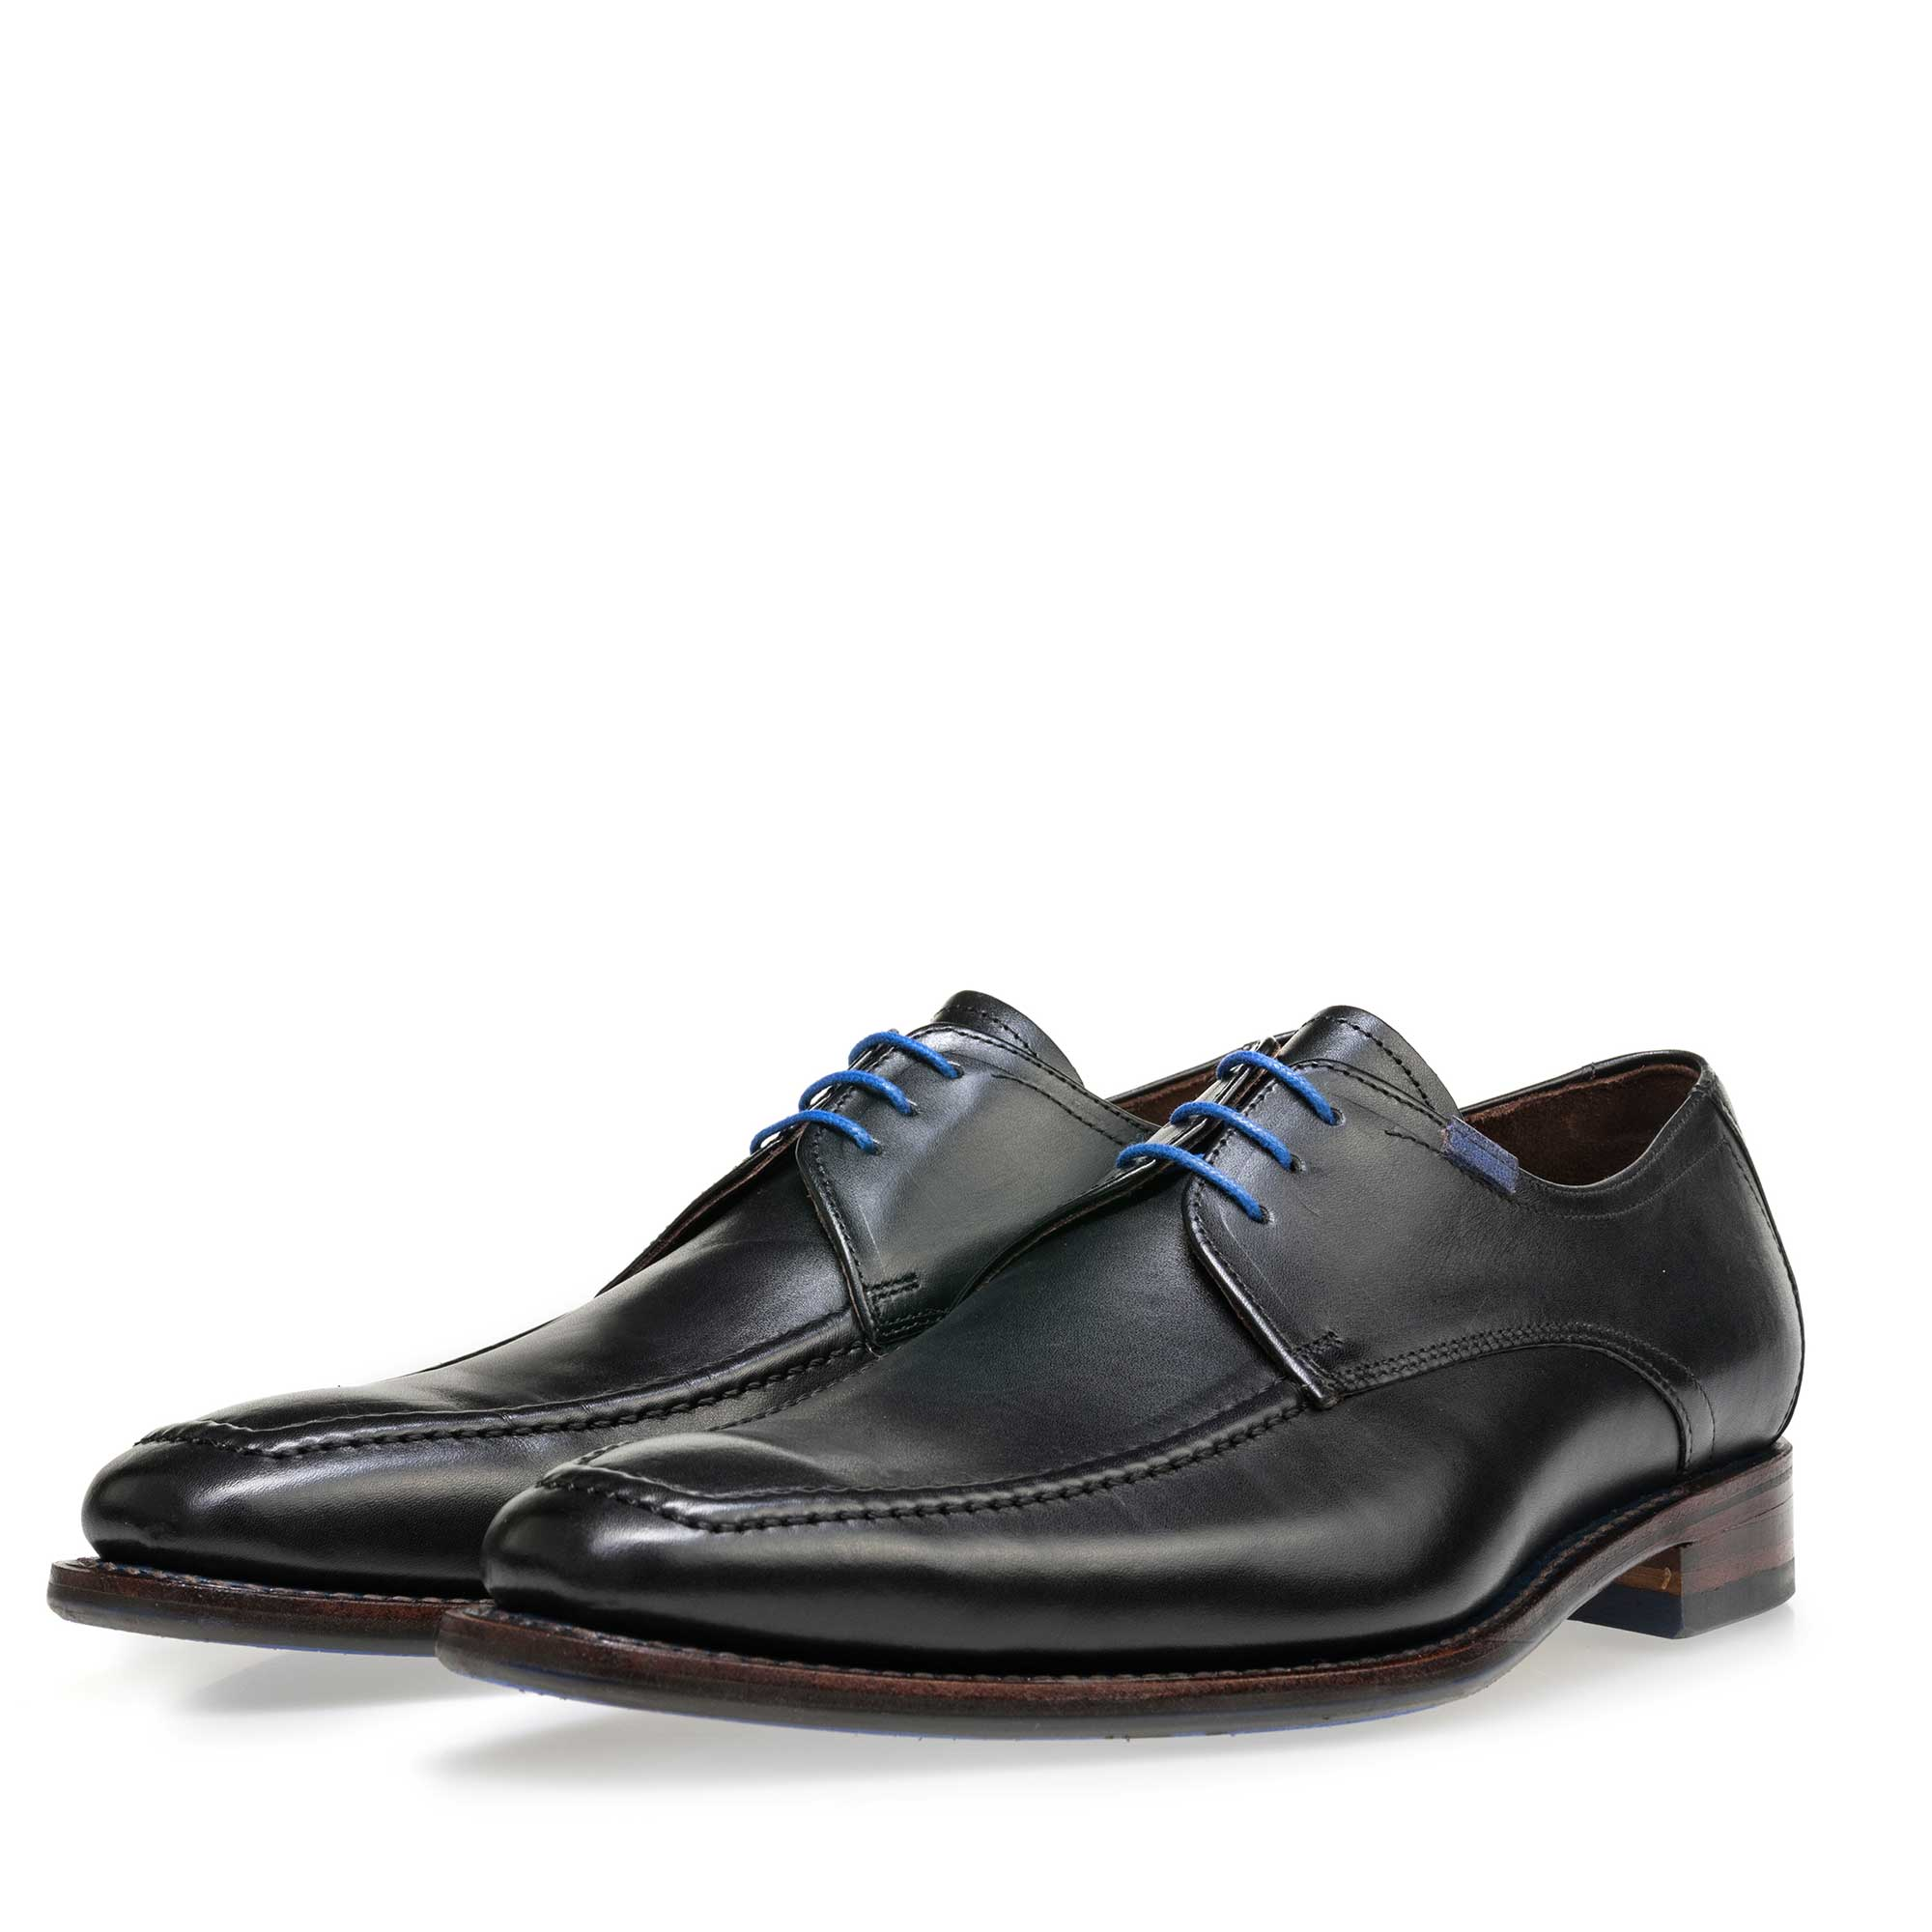 13370/01 - Floris van Bommel black leather men's lace-up shoe